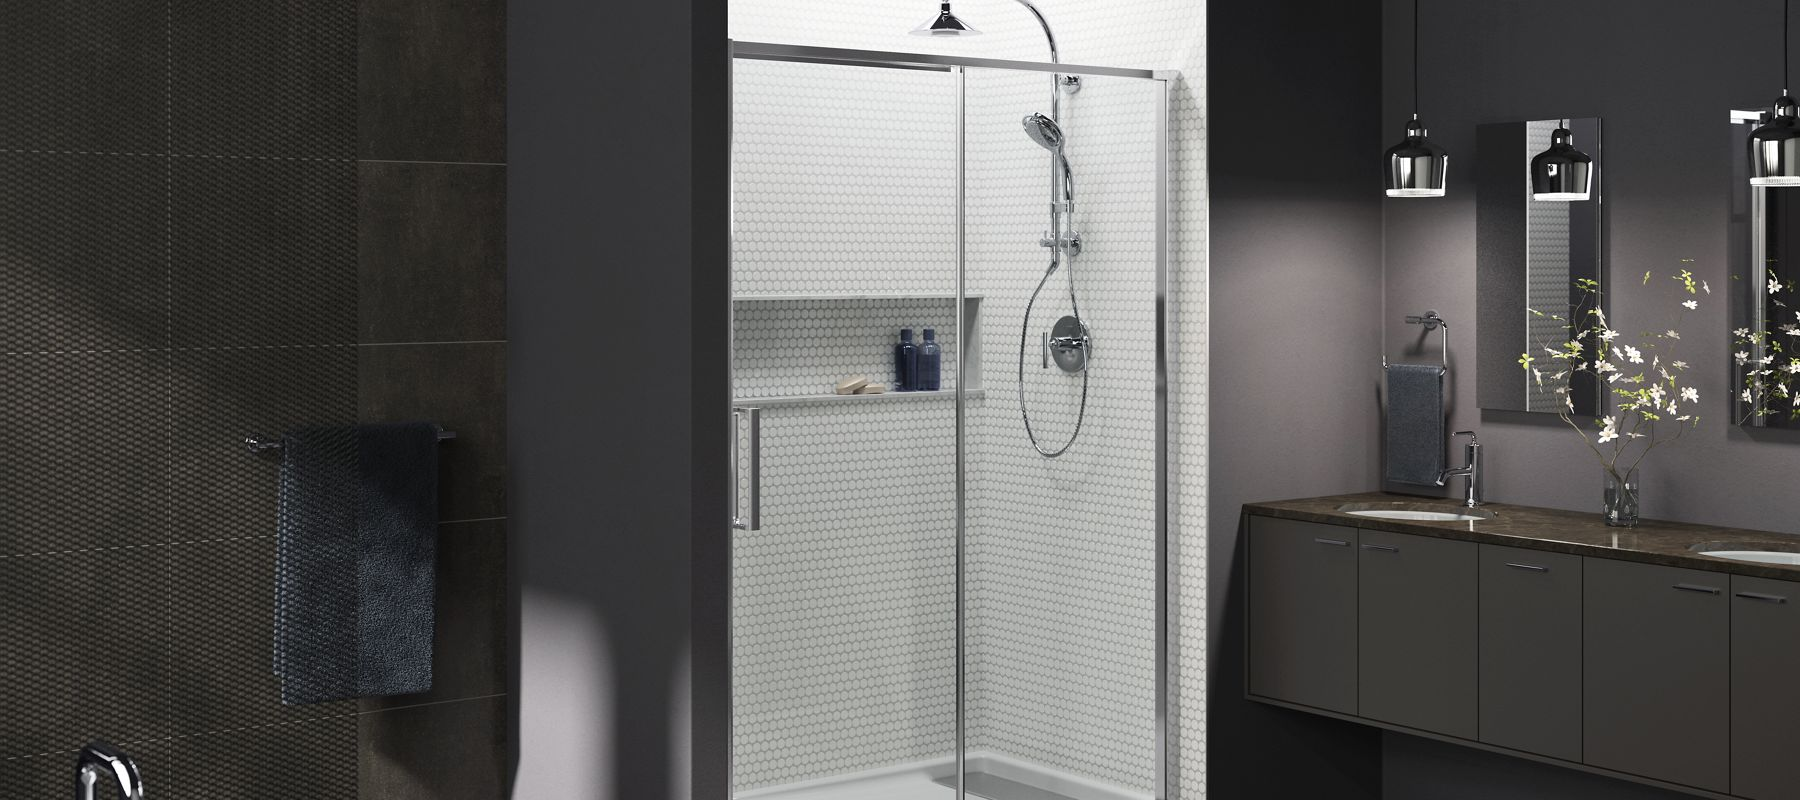 Bathroom Stalls In Europe showering | bathroom | kohler